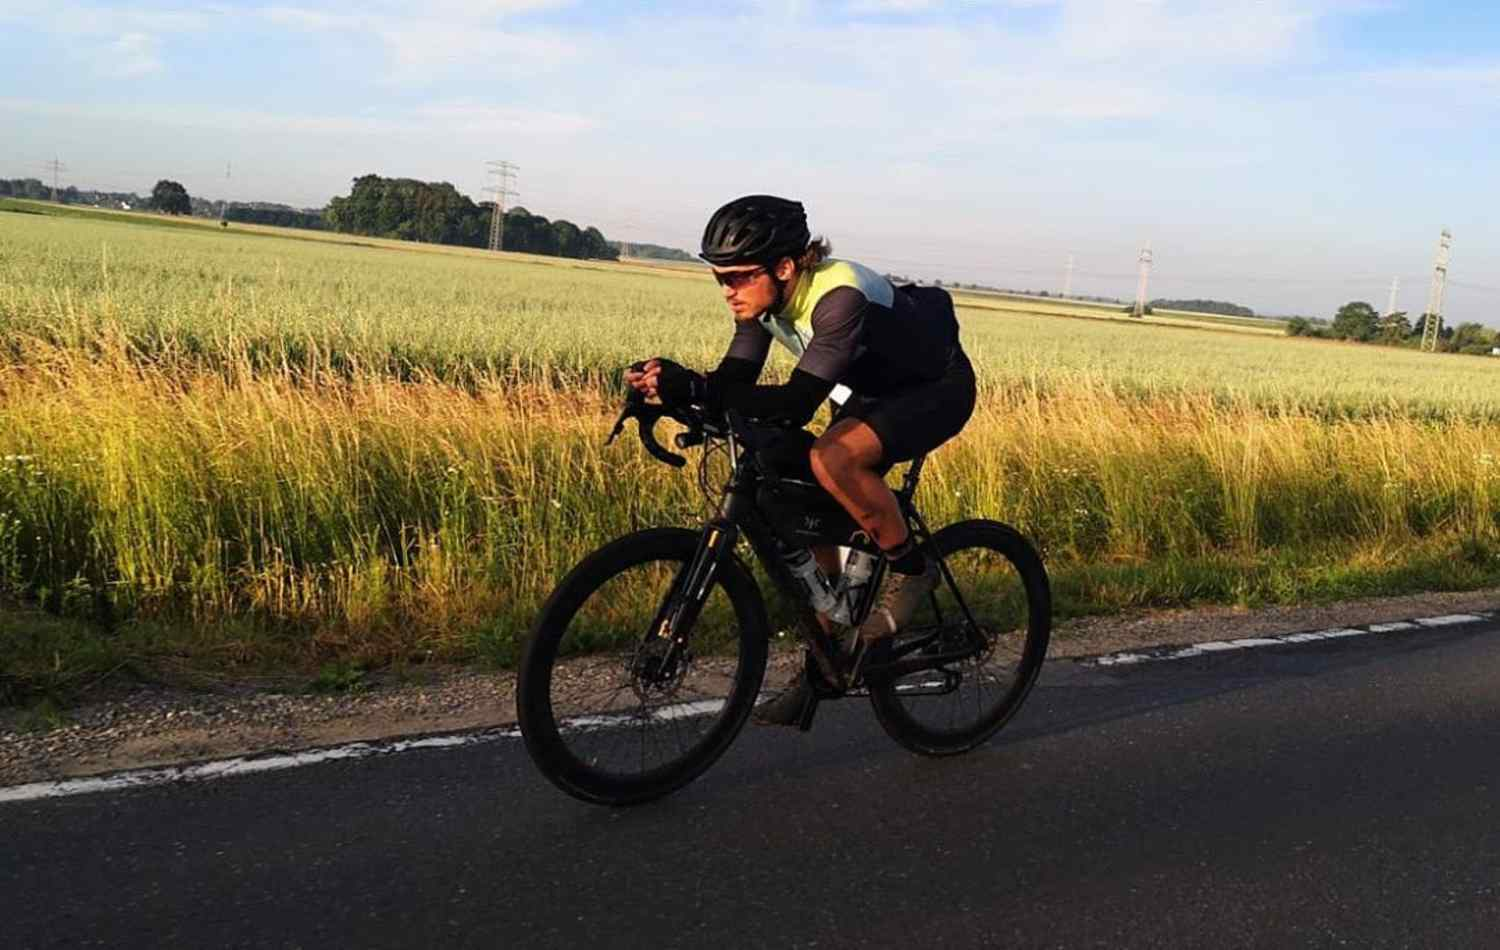 Rapha cycling alongside a cornfield on the aerobars with bikepacking luggage on his bike